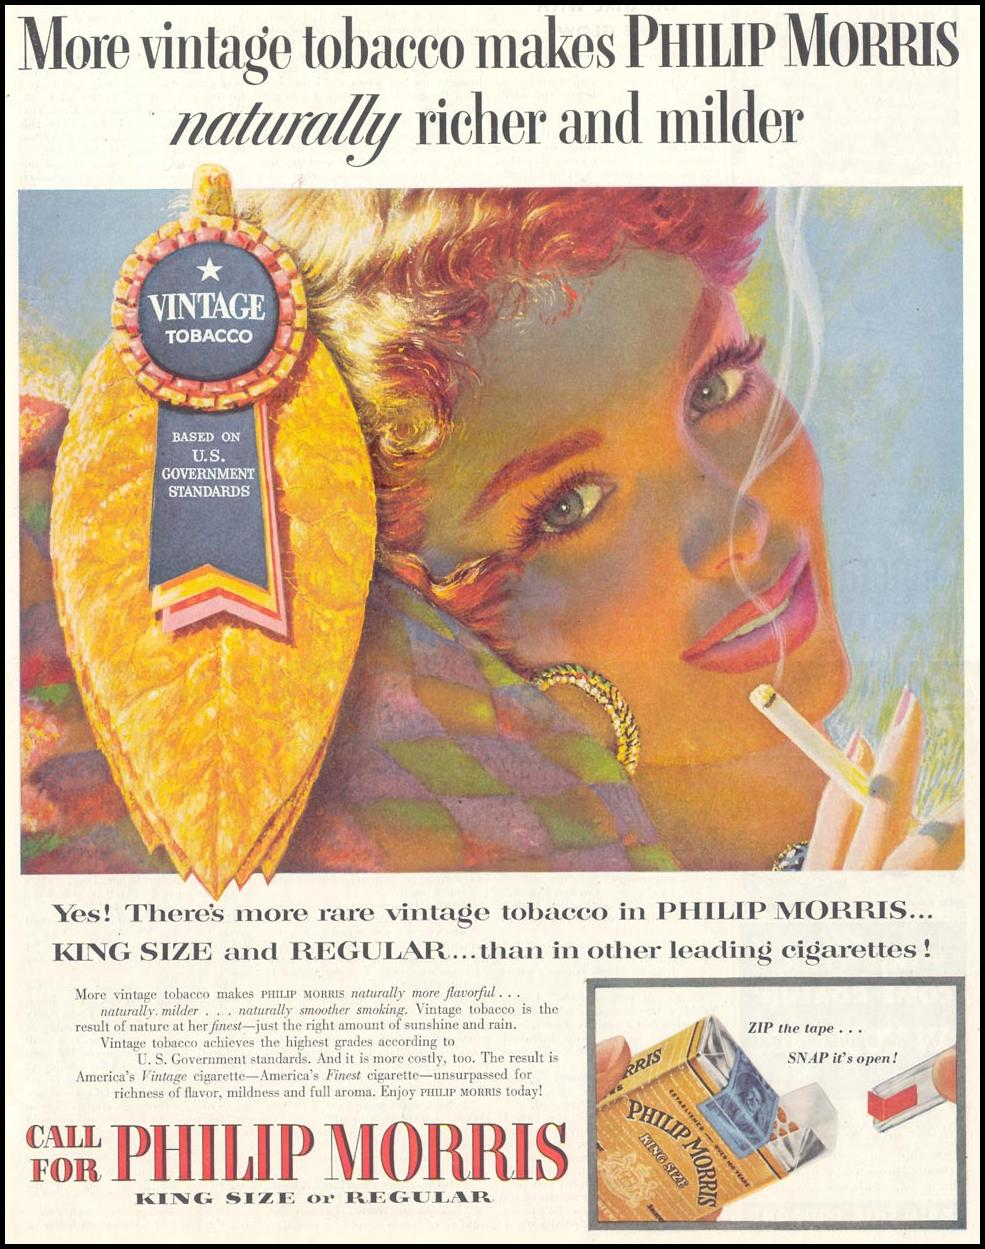 PHILIP MORRIS CIGARETTES SATURDAY EVENING POST 02/05/1955 p. 73